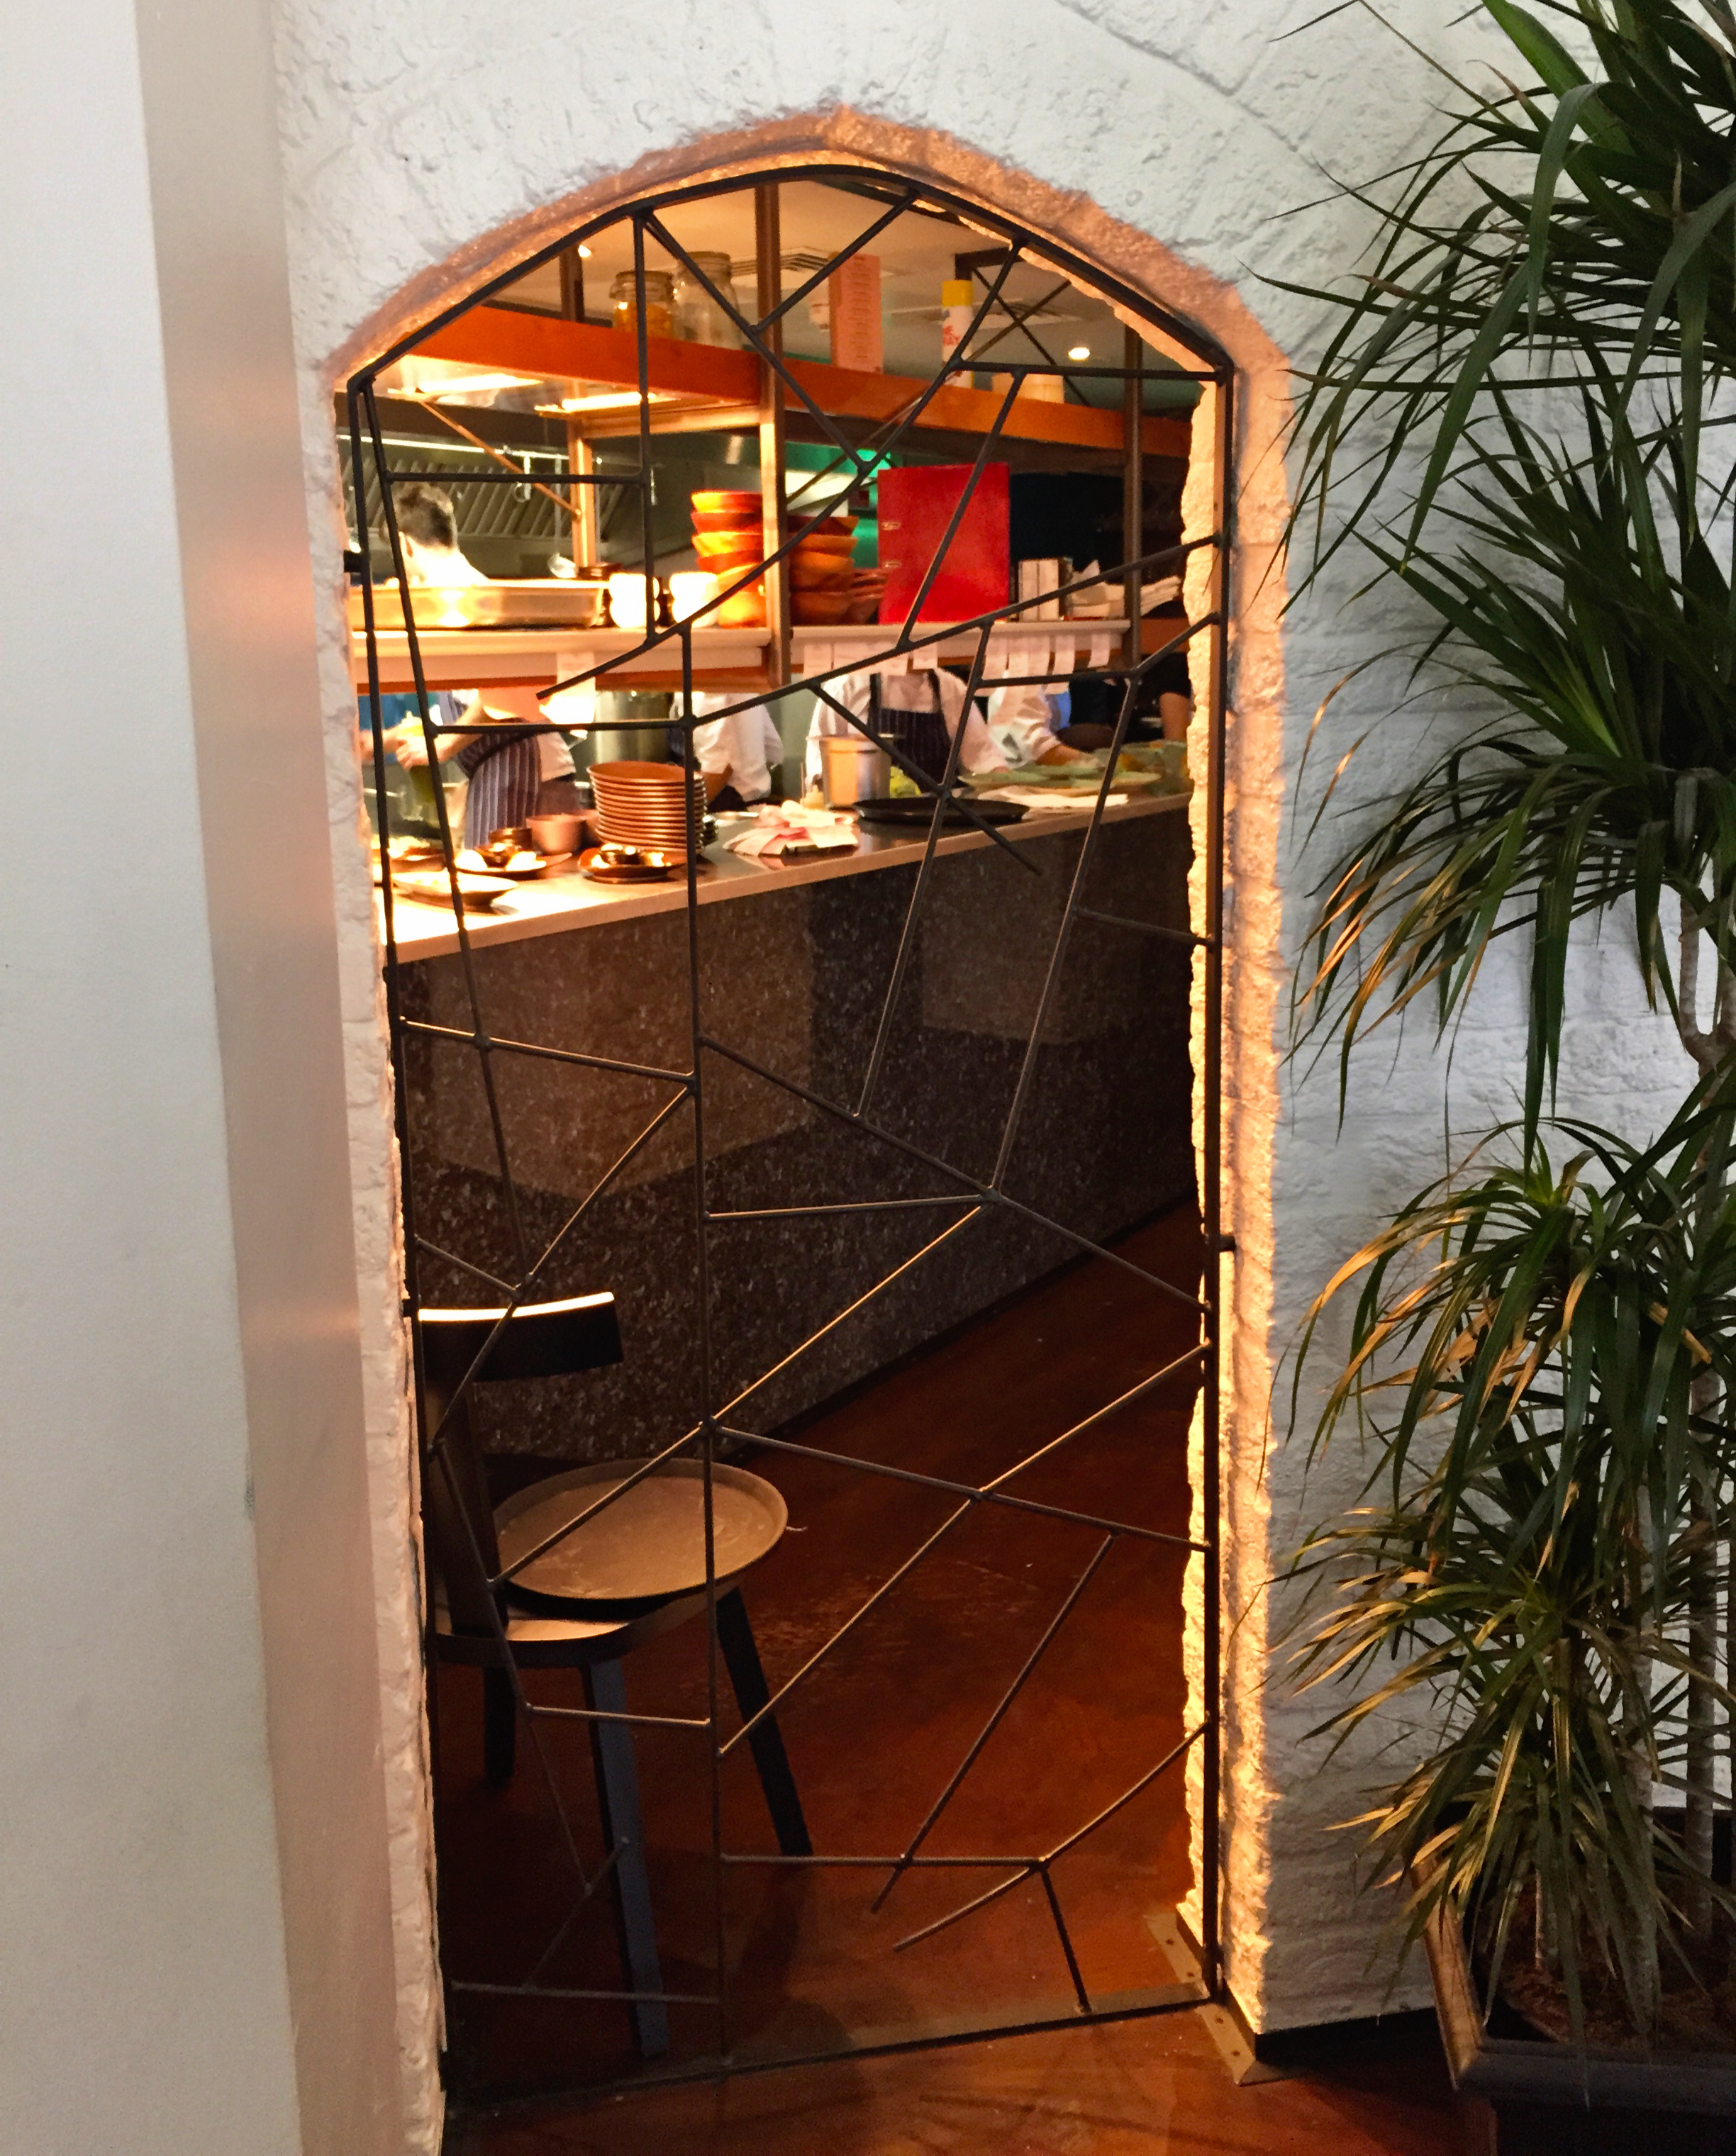 Unique Flower Power  Long Lunch At Lima Floral  Garrick Street  With Marvelous Flower Power  Long Lunch At Lima Floral  Garrick Street Covent Garden  London Wce Bj With Beautiful The Secret Garden Ayr Also What Is In Covent Garden In Addition Outside Garden Lighting And What Is A Master Gardener As Well As Garden Centre Stanmore Additionally Souk Covent Garden From Welovefooditsallweeatcom With   Marvelous Flower Power  Long Lunch At Lima Floral  Garrick Street  With Beautiful Flower Power  Long Lunch At Lima Floral  Garrick Street Covent Garden  London Wce Bj And Unique The Secret Garden Ayr Also What Is In Covent Garden In Addition Outside Garden Lighting From Welovefooditsallweeatcom